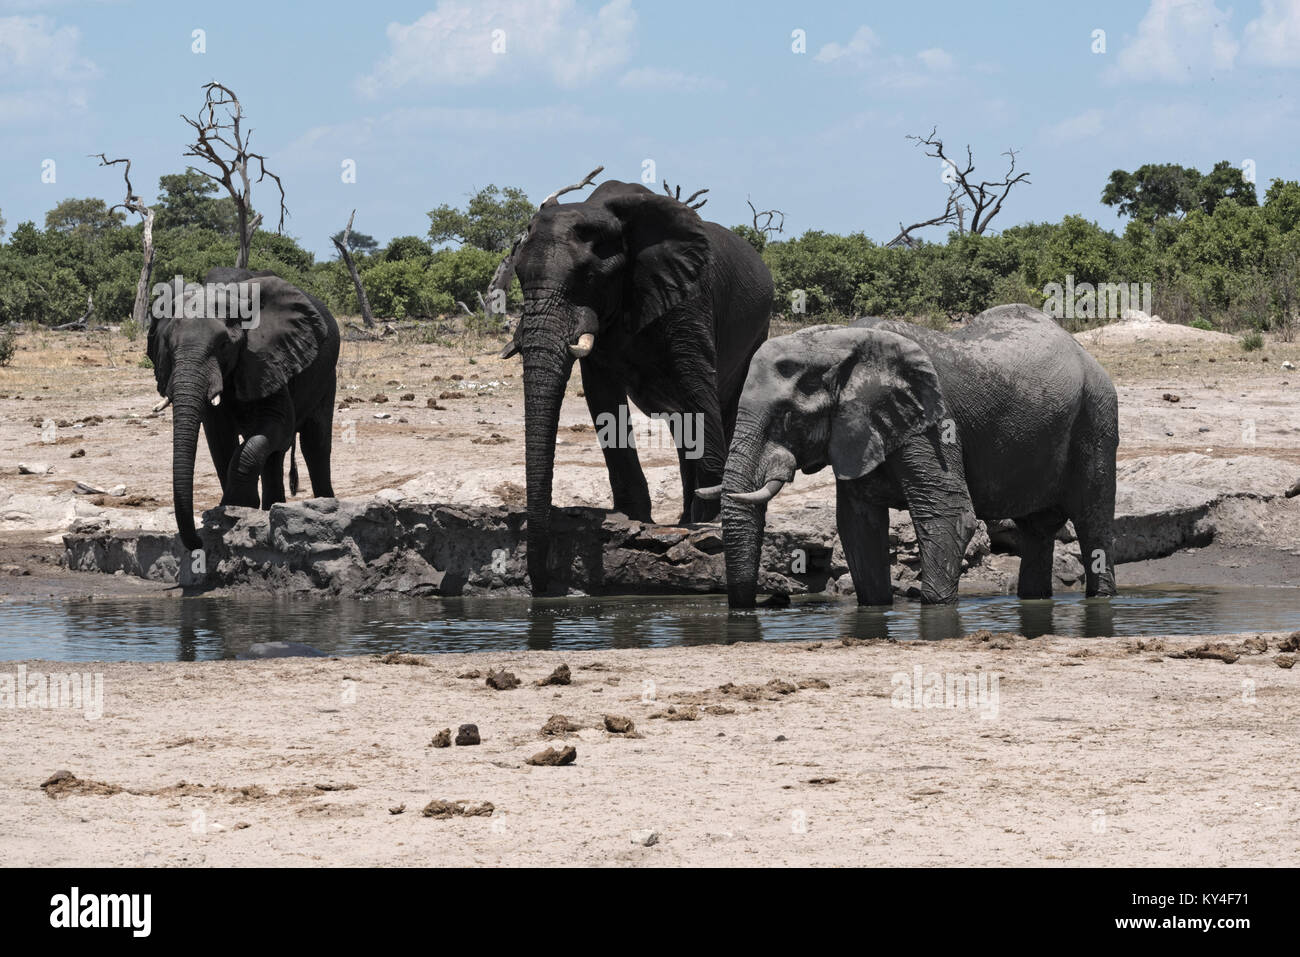 Elefant Gruppe an einem Wasserloch in Chope Nationalpark in Botsuana Stockbild